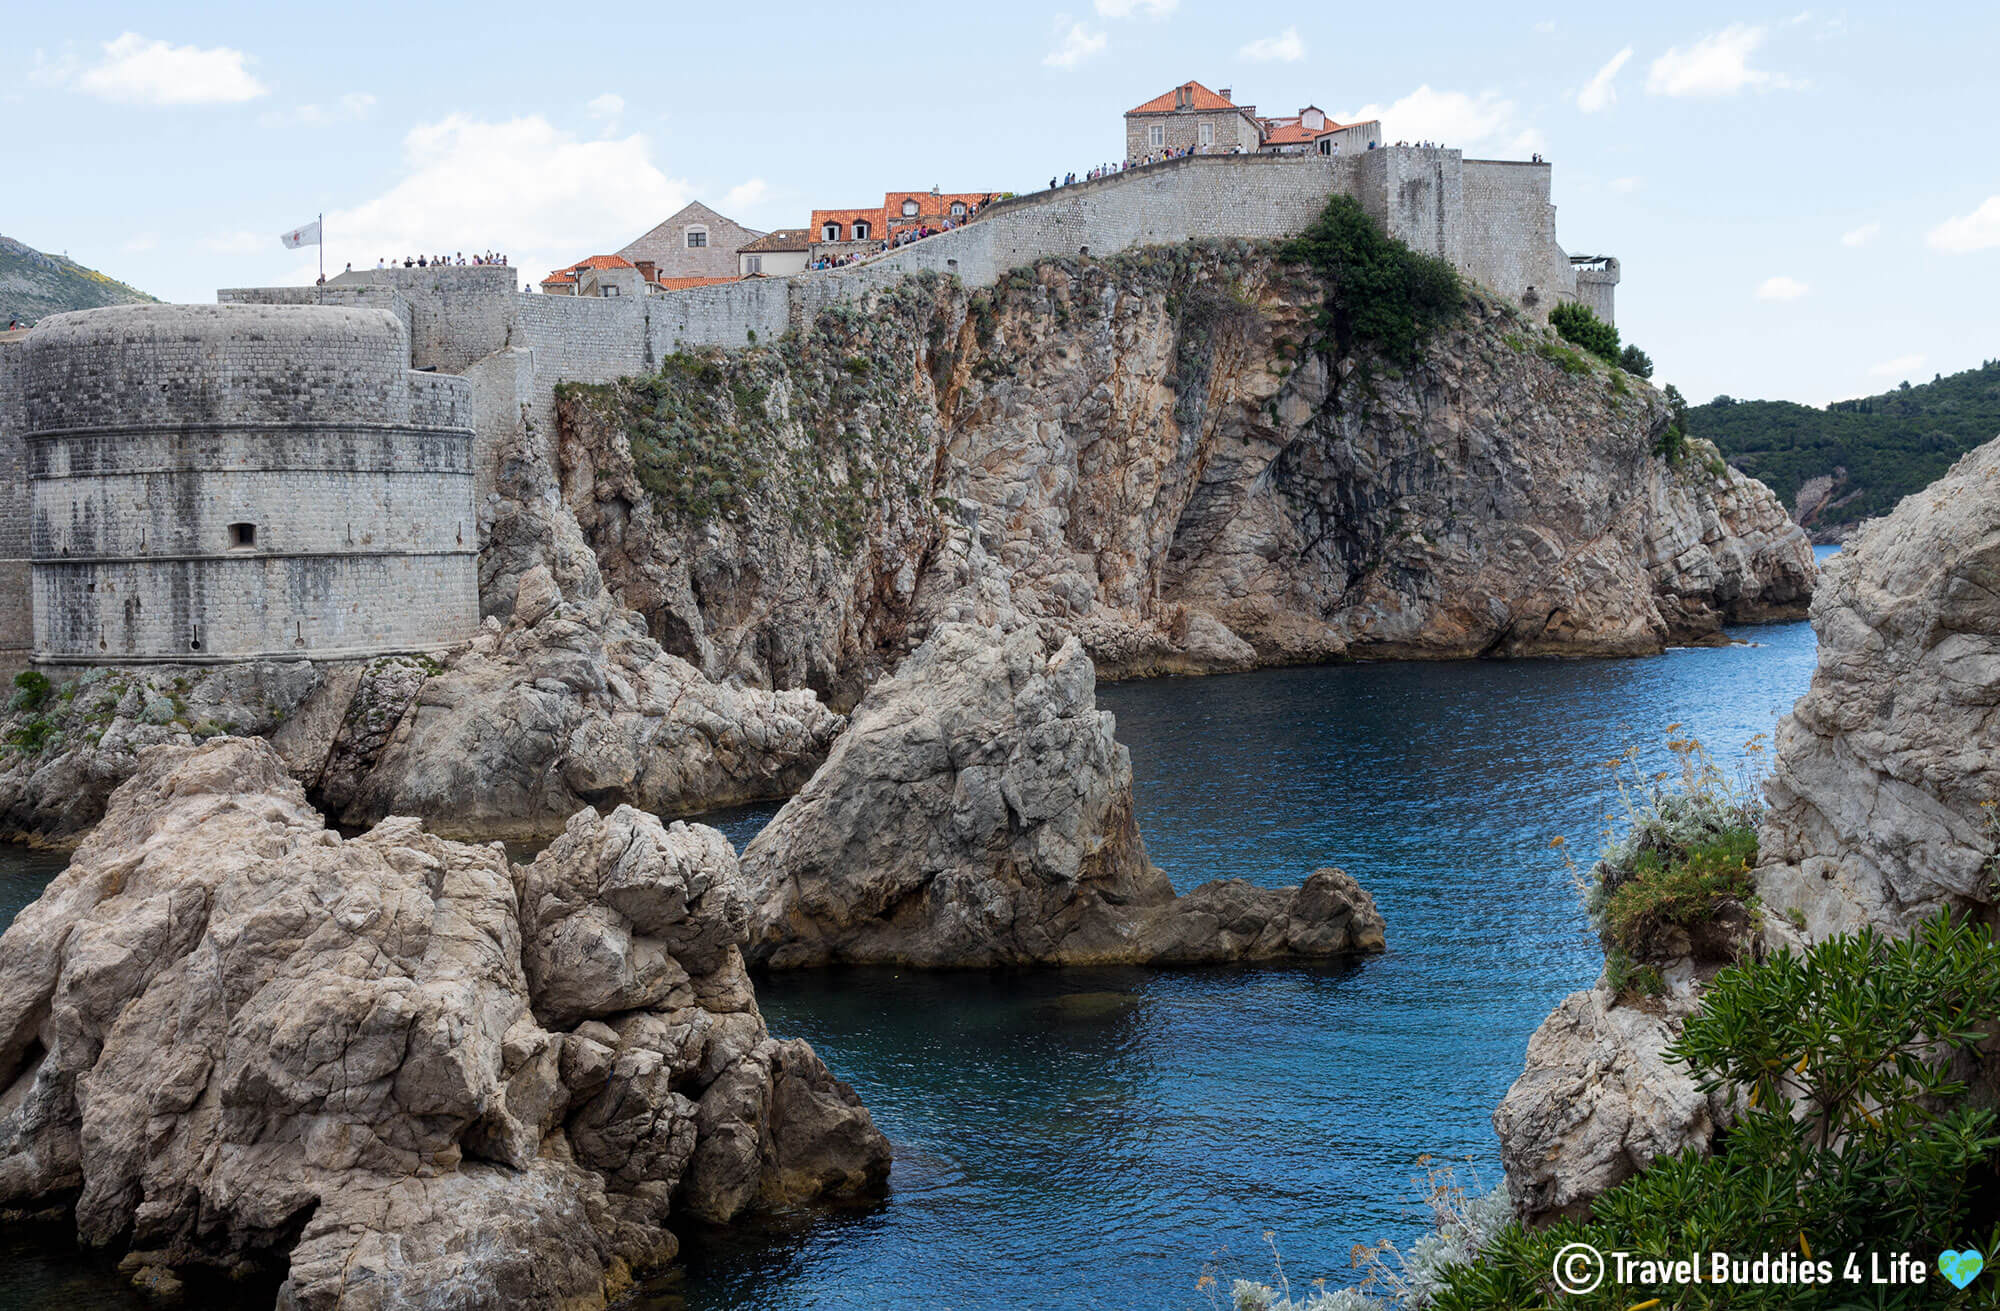 Looking at Old Town Dubrovnik and the City Walls